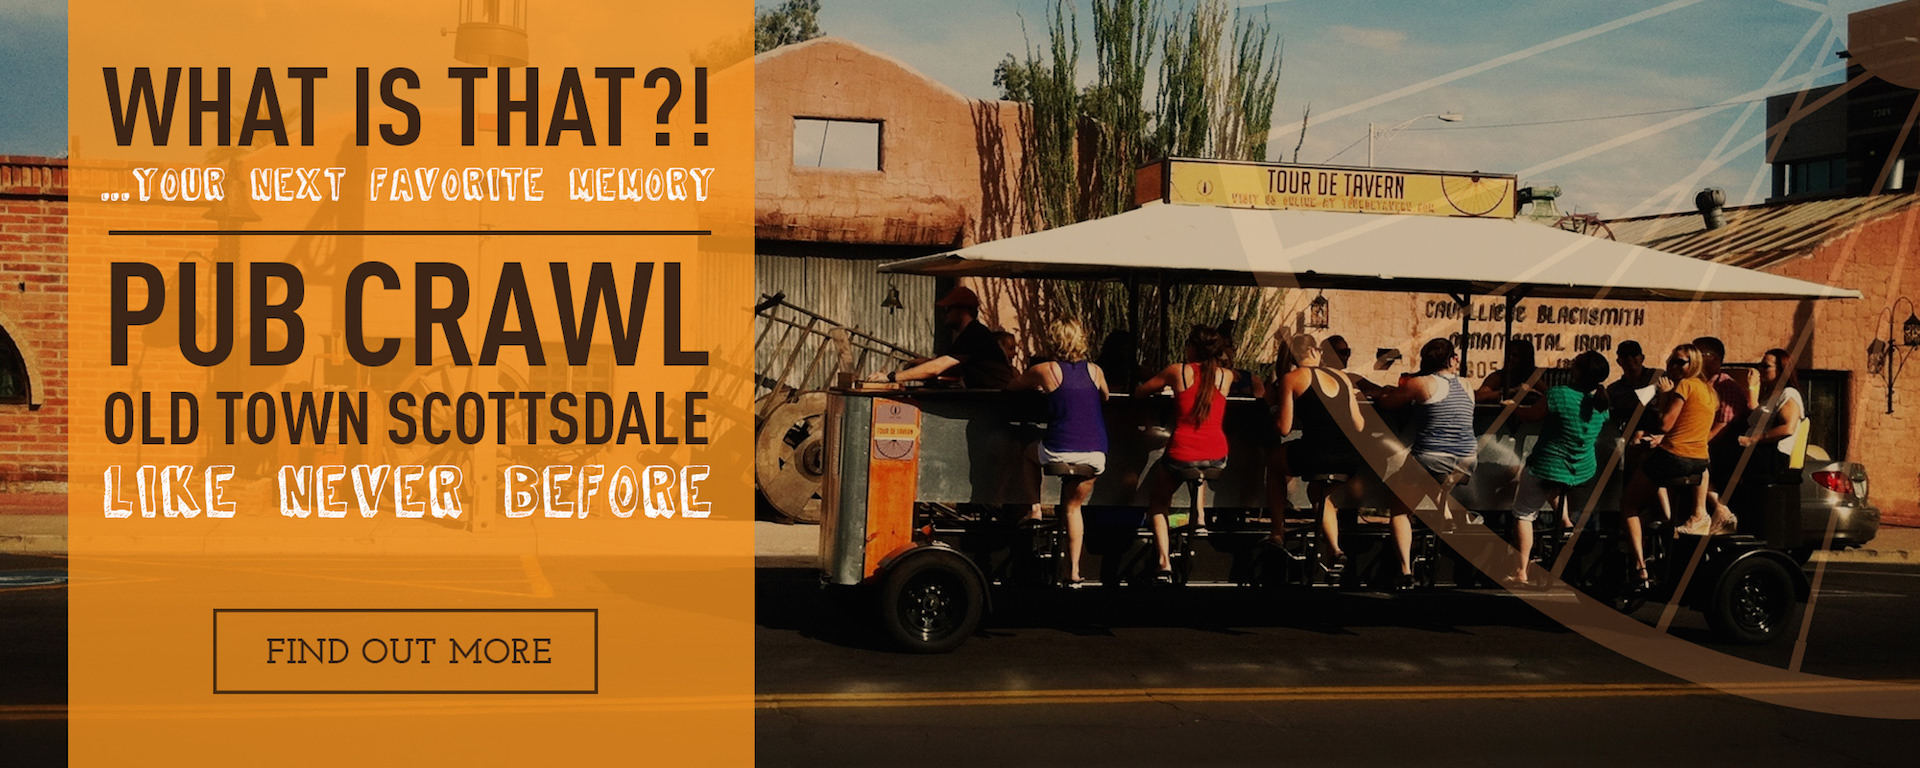 Scottsdale Pub Crawl, Scottsdale Party Bike